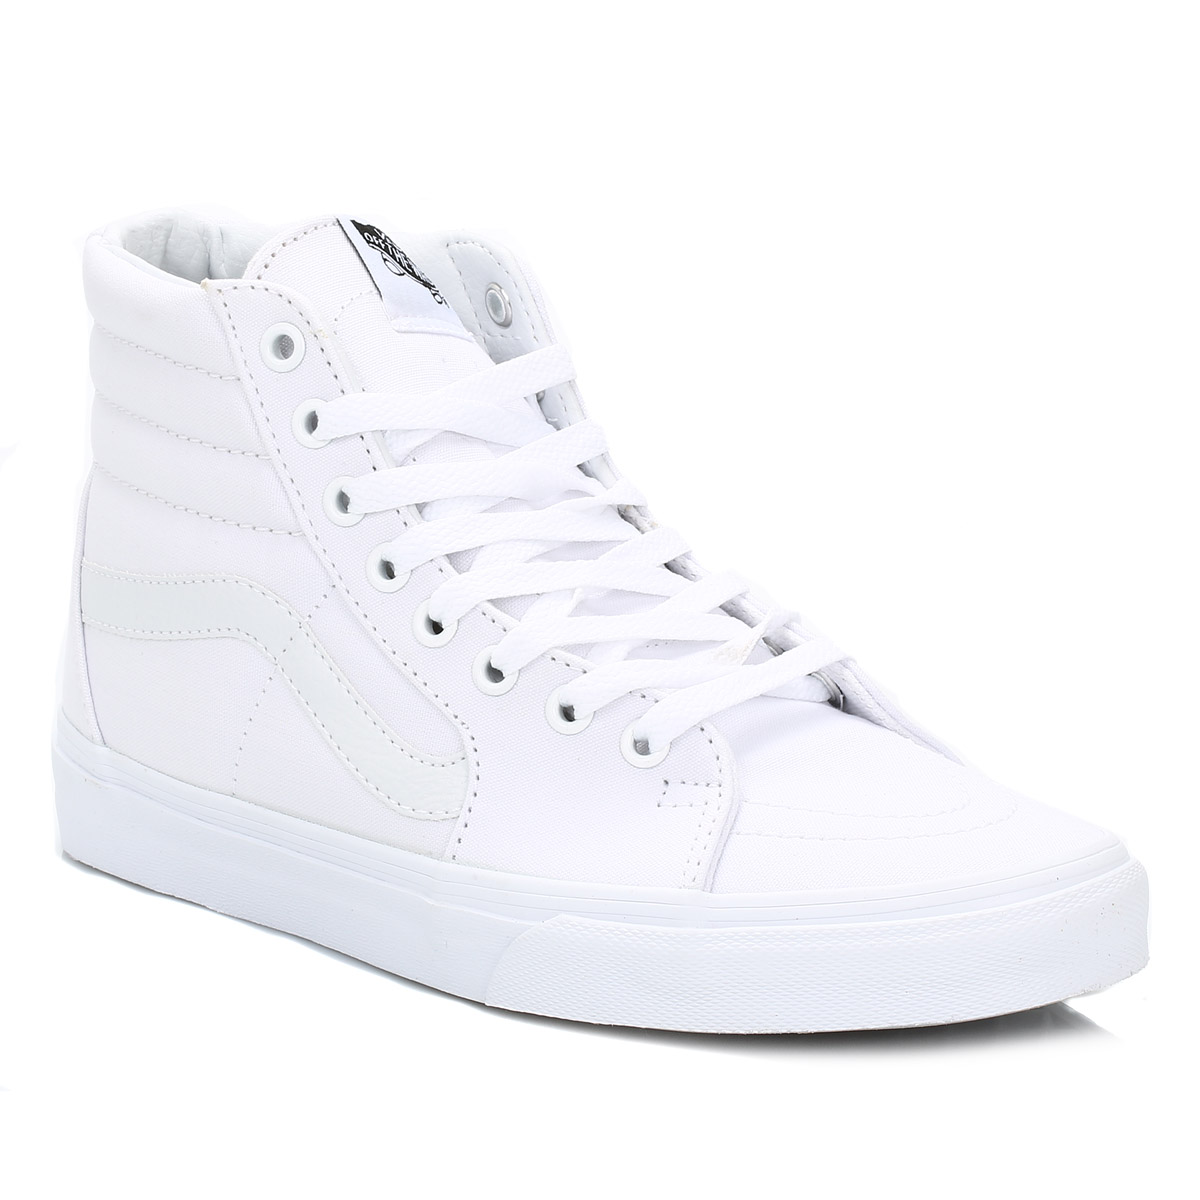 mens high top all white jordans. From Michael Jordan to LeBron James, Nike high-top basketball shoes are considered the gold standard by some of the most notable players in the game.